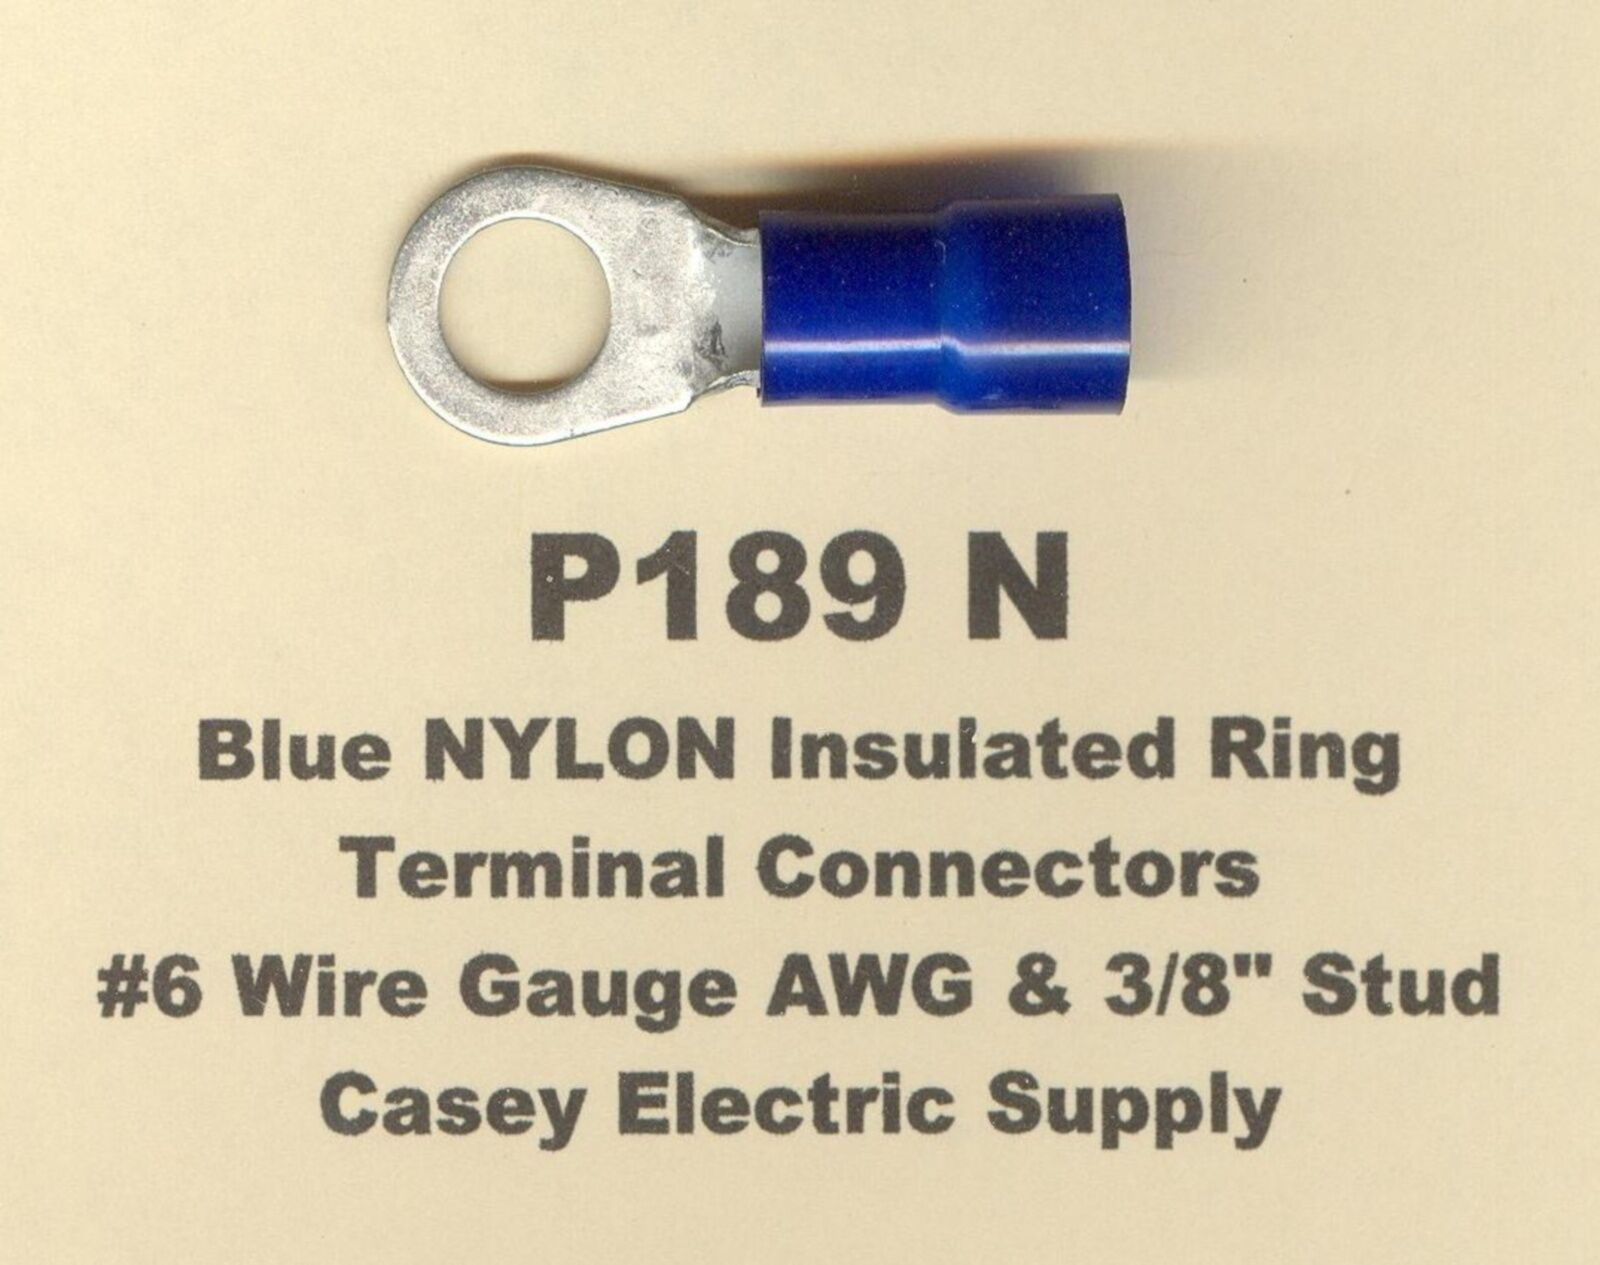 10 blue nylon insulated ring terminal connectors 6 wire gauge 38 resntentobalflowflowcomponenttechnicalissues greentooth Images